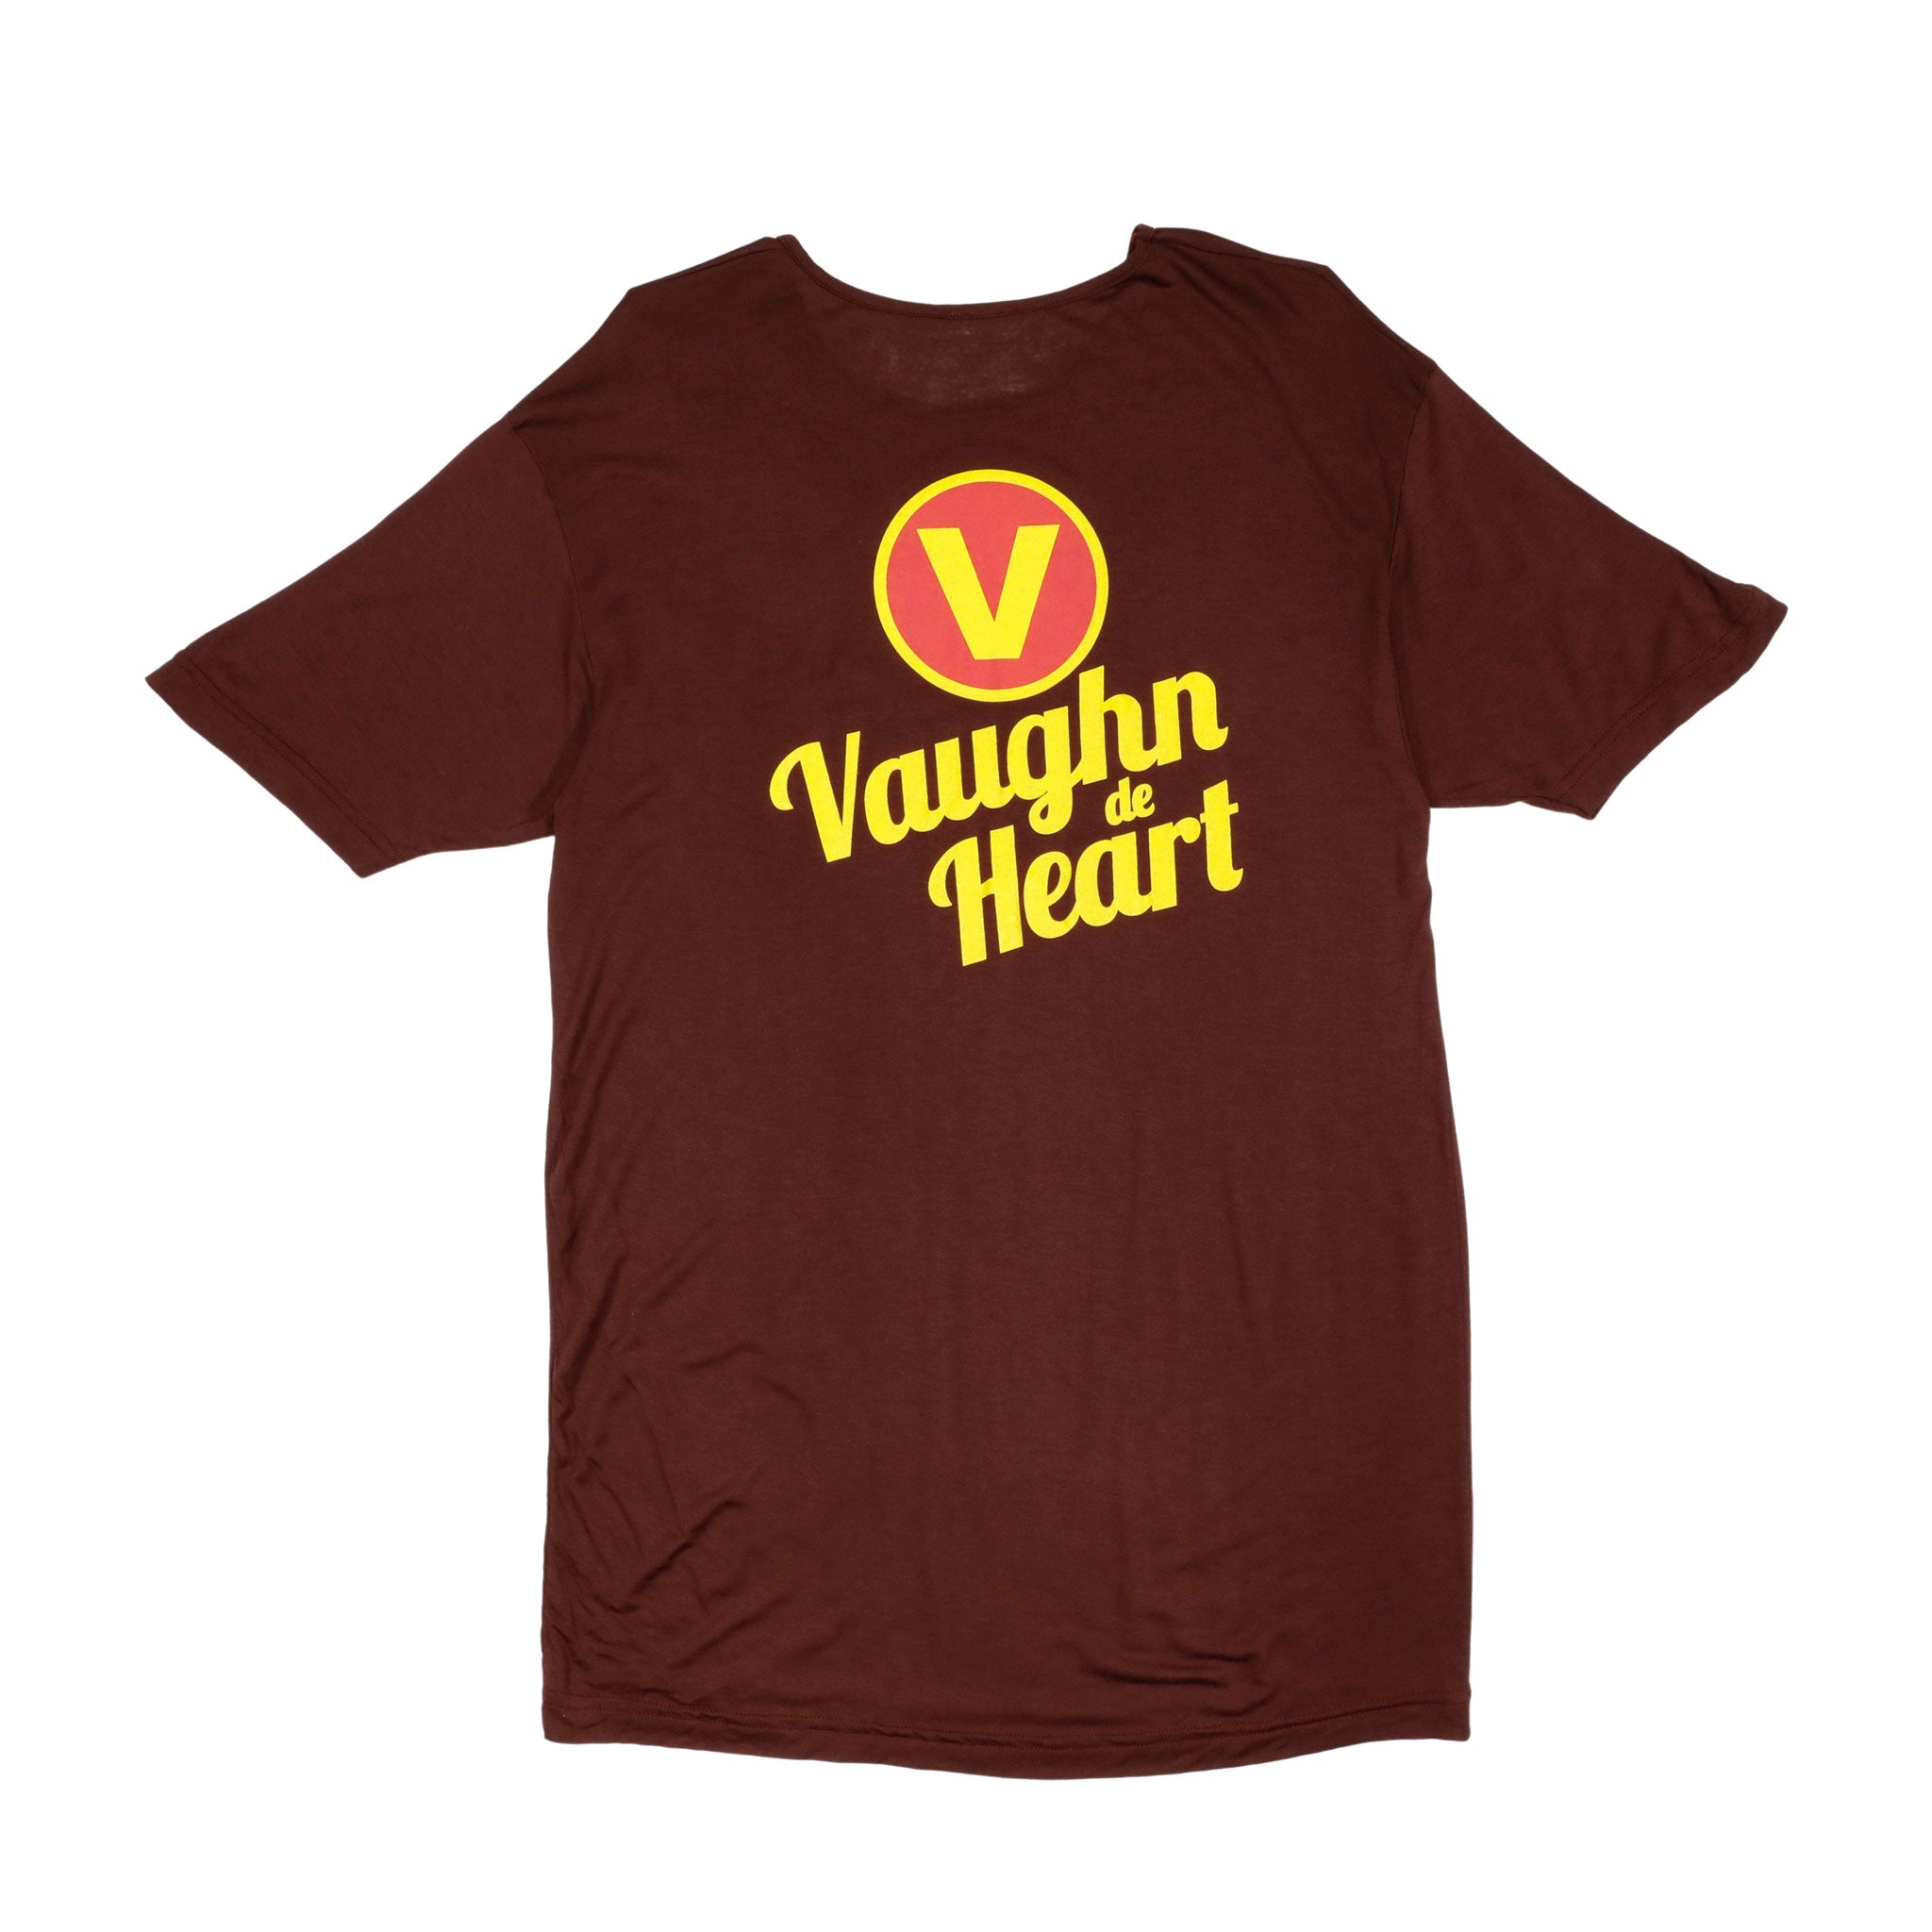 Retro Logo T shirt - Vaughn de Heart